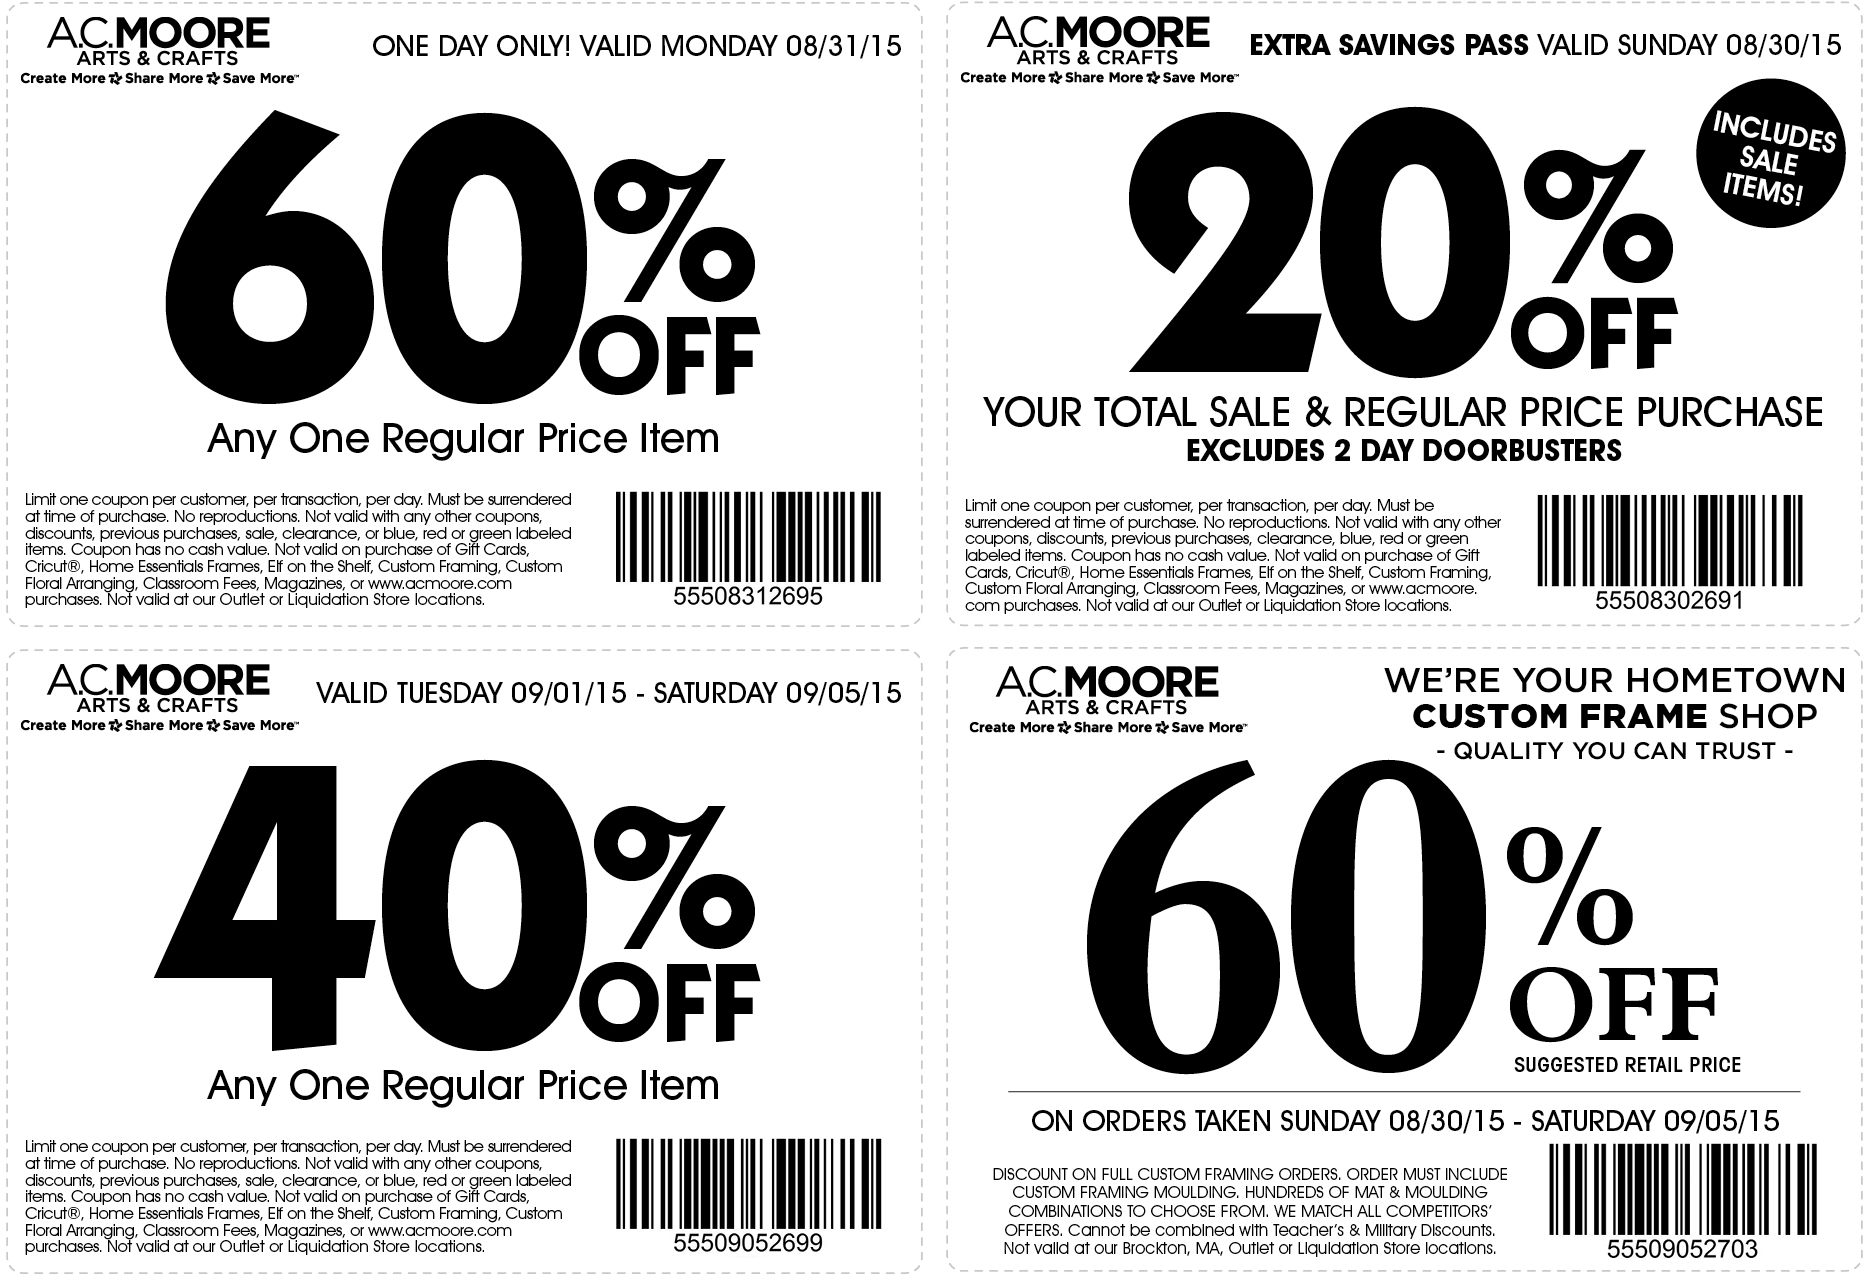 Ac-Moore-Coupons-2016-Valid-Coupons (3) – Printable Coupons Online - Free Online Printable Ac Moore Coupons